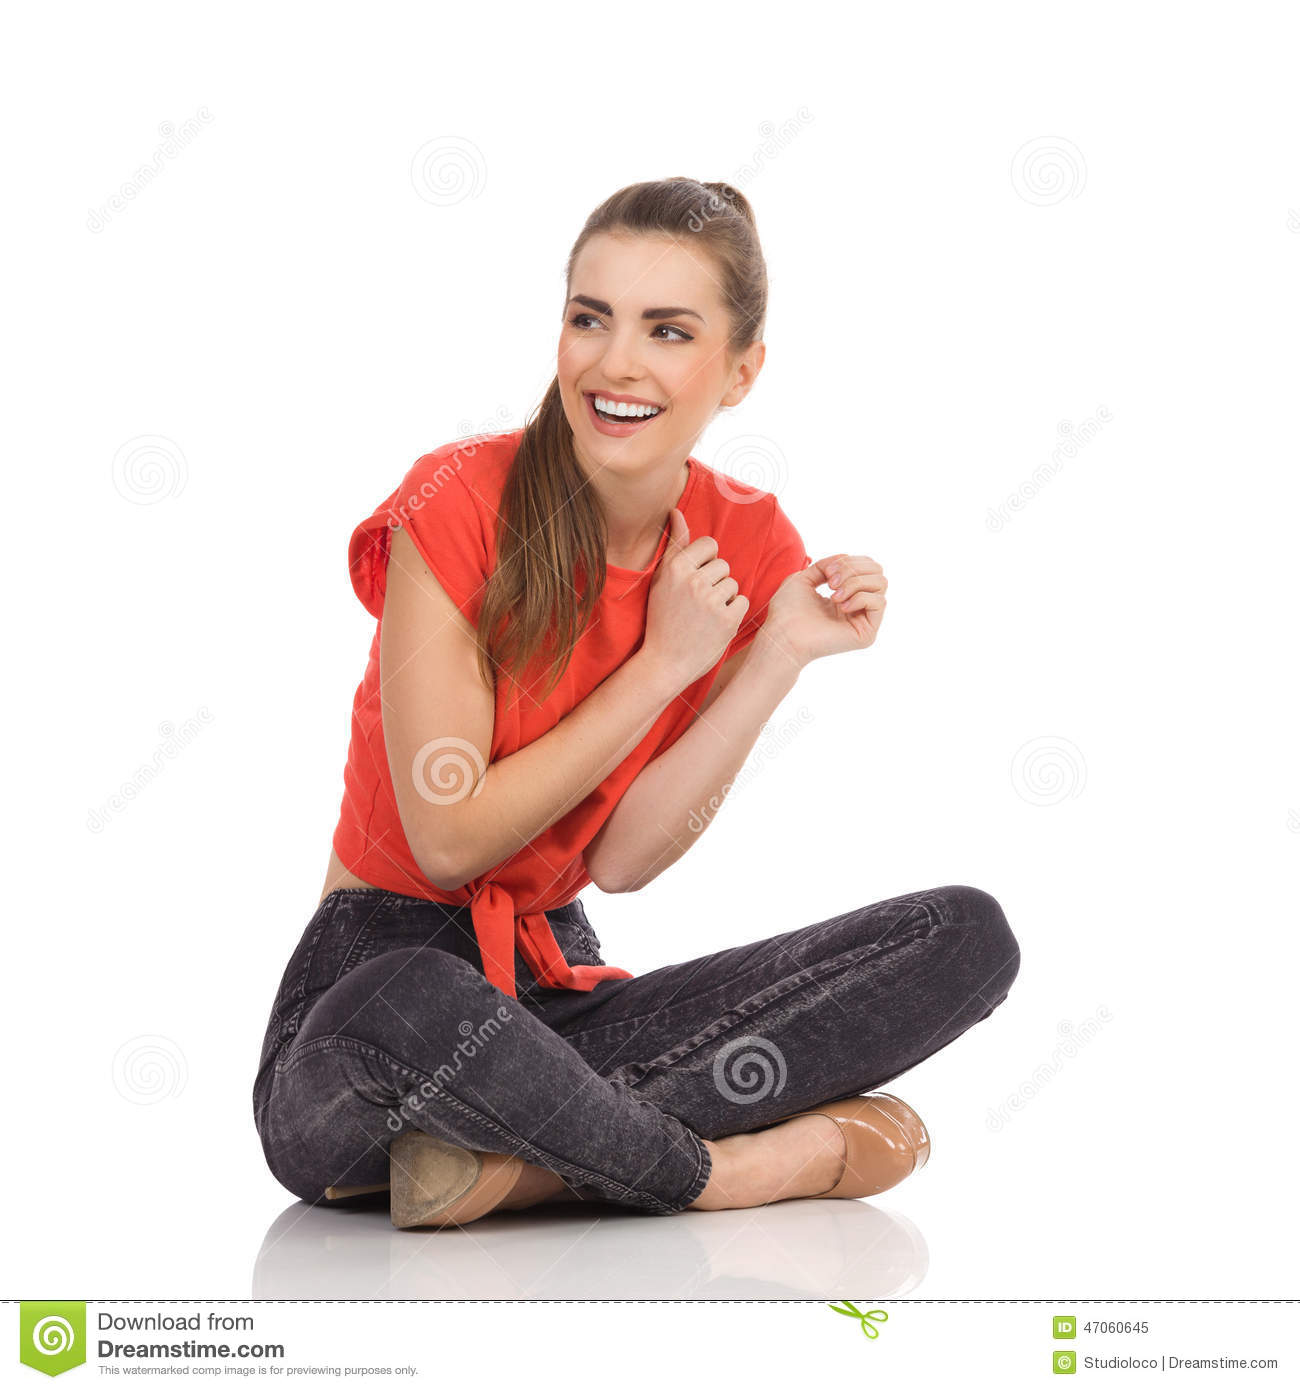 laughing girl sitting on the floor with legs crossed stock image image of carefree length. Black Bedroom Furniture Sets. Home Design Ideas